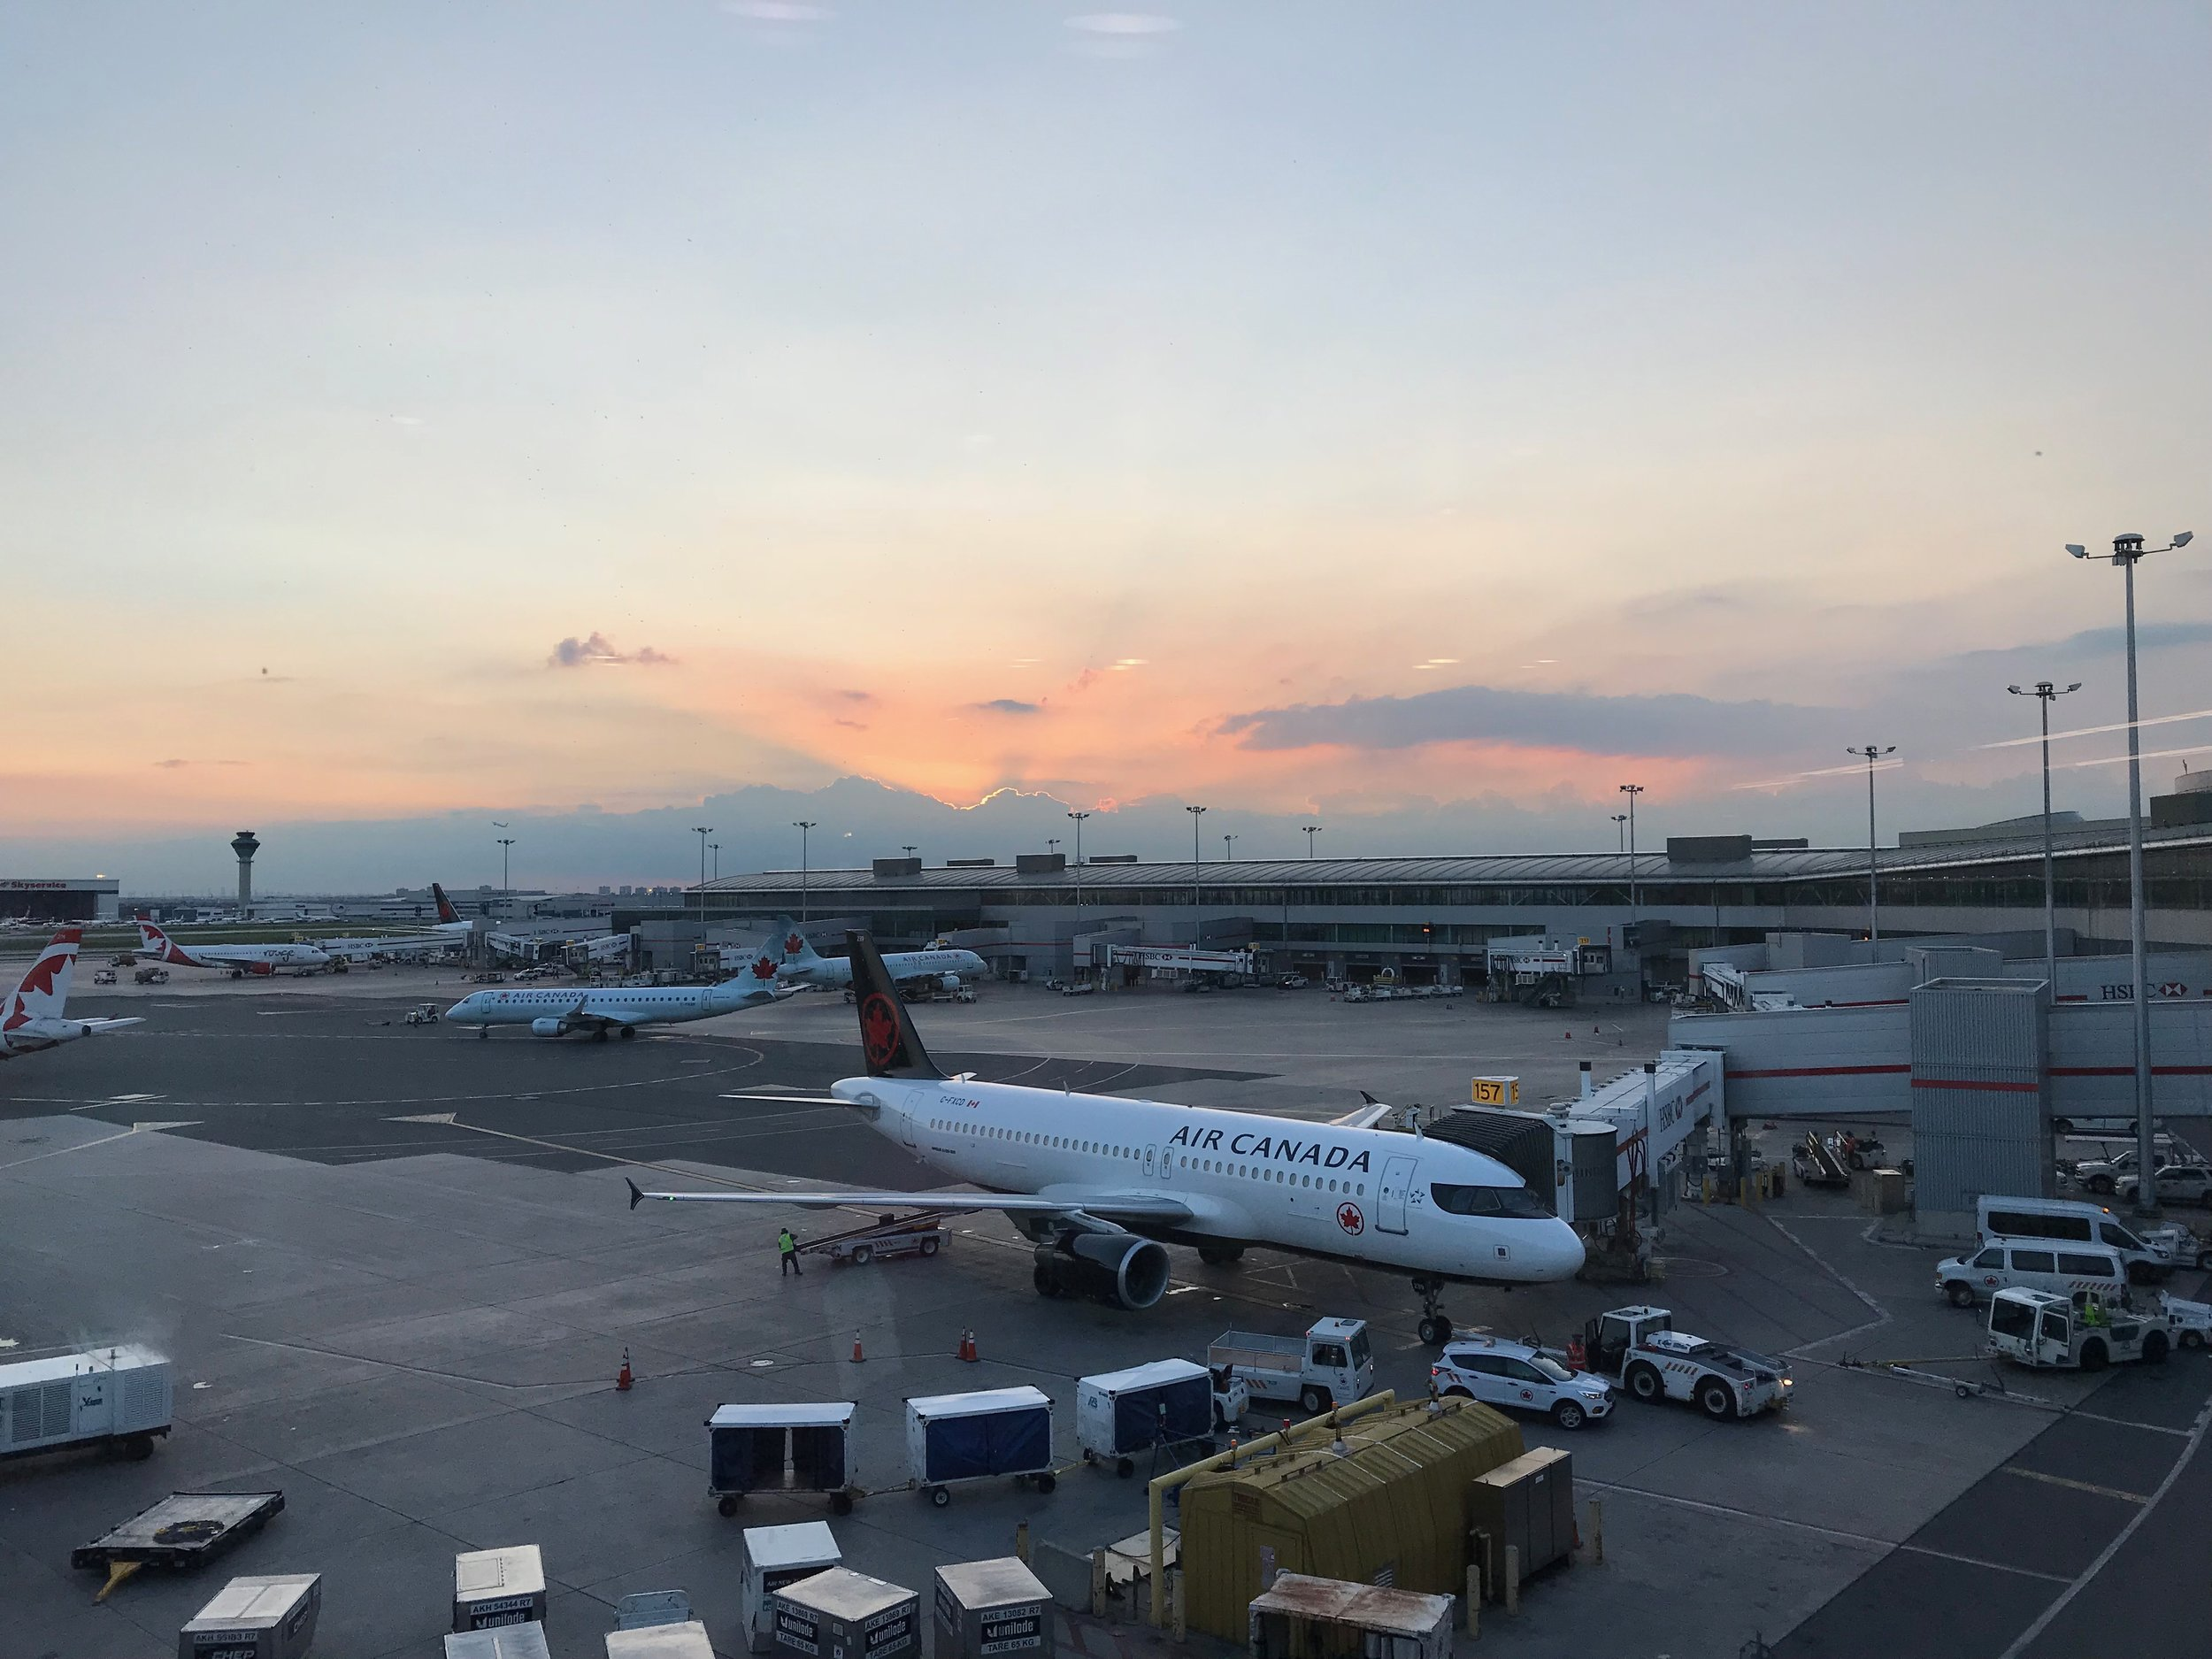 Sunset at Toronto Pearson Airport.